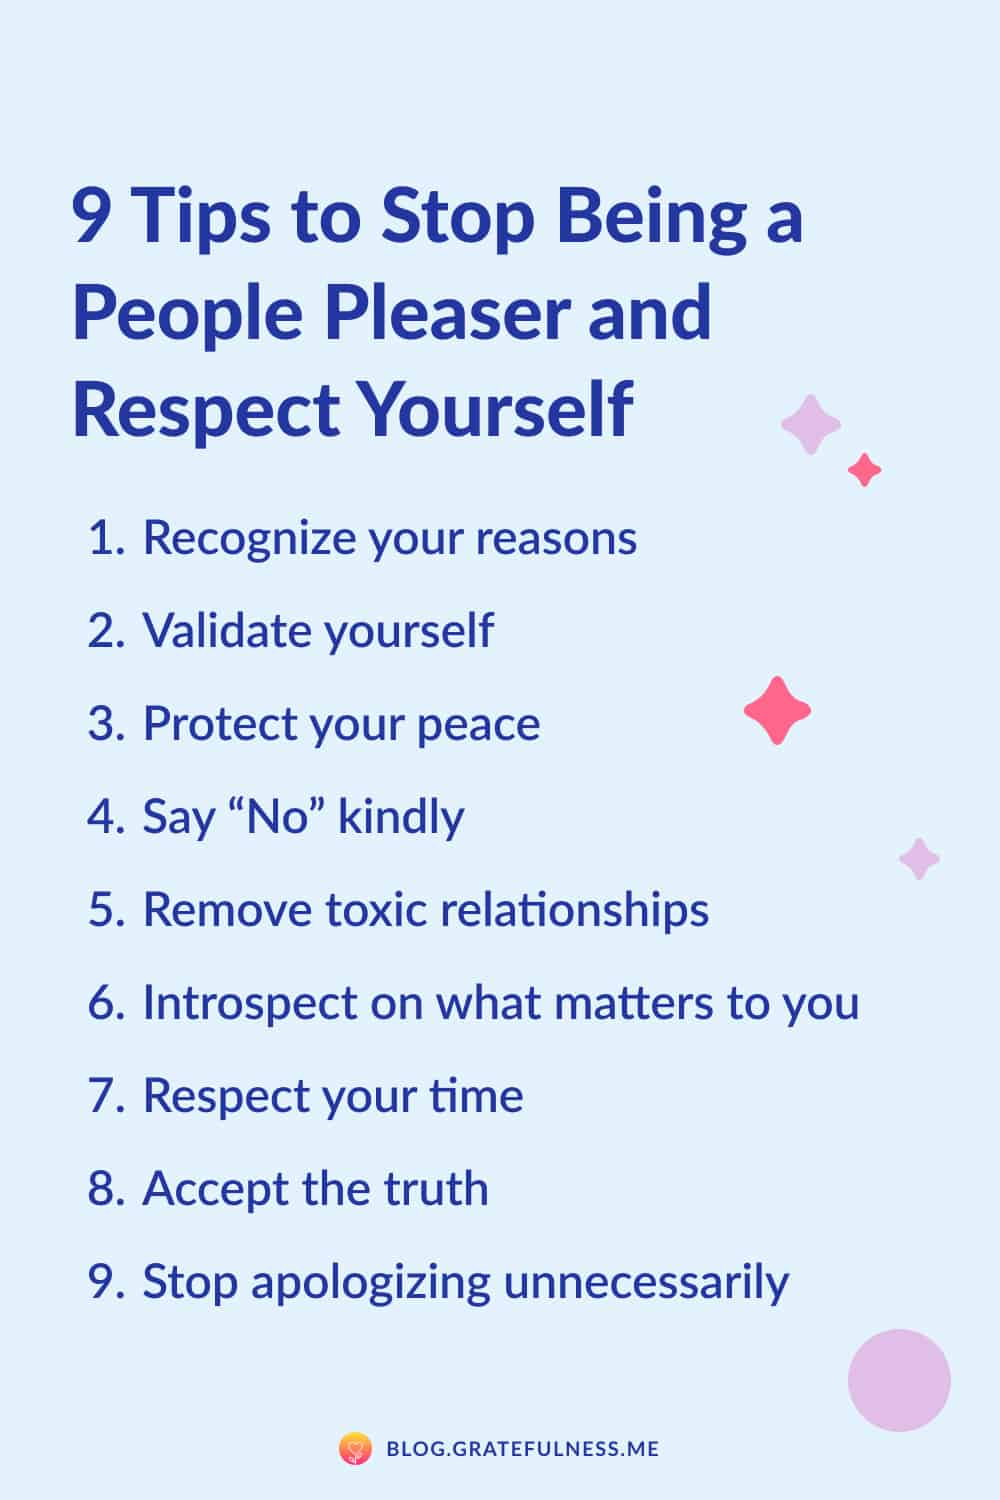 Image with list of 9 tips to stop being a people pleaser